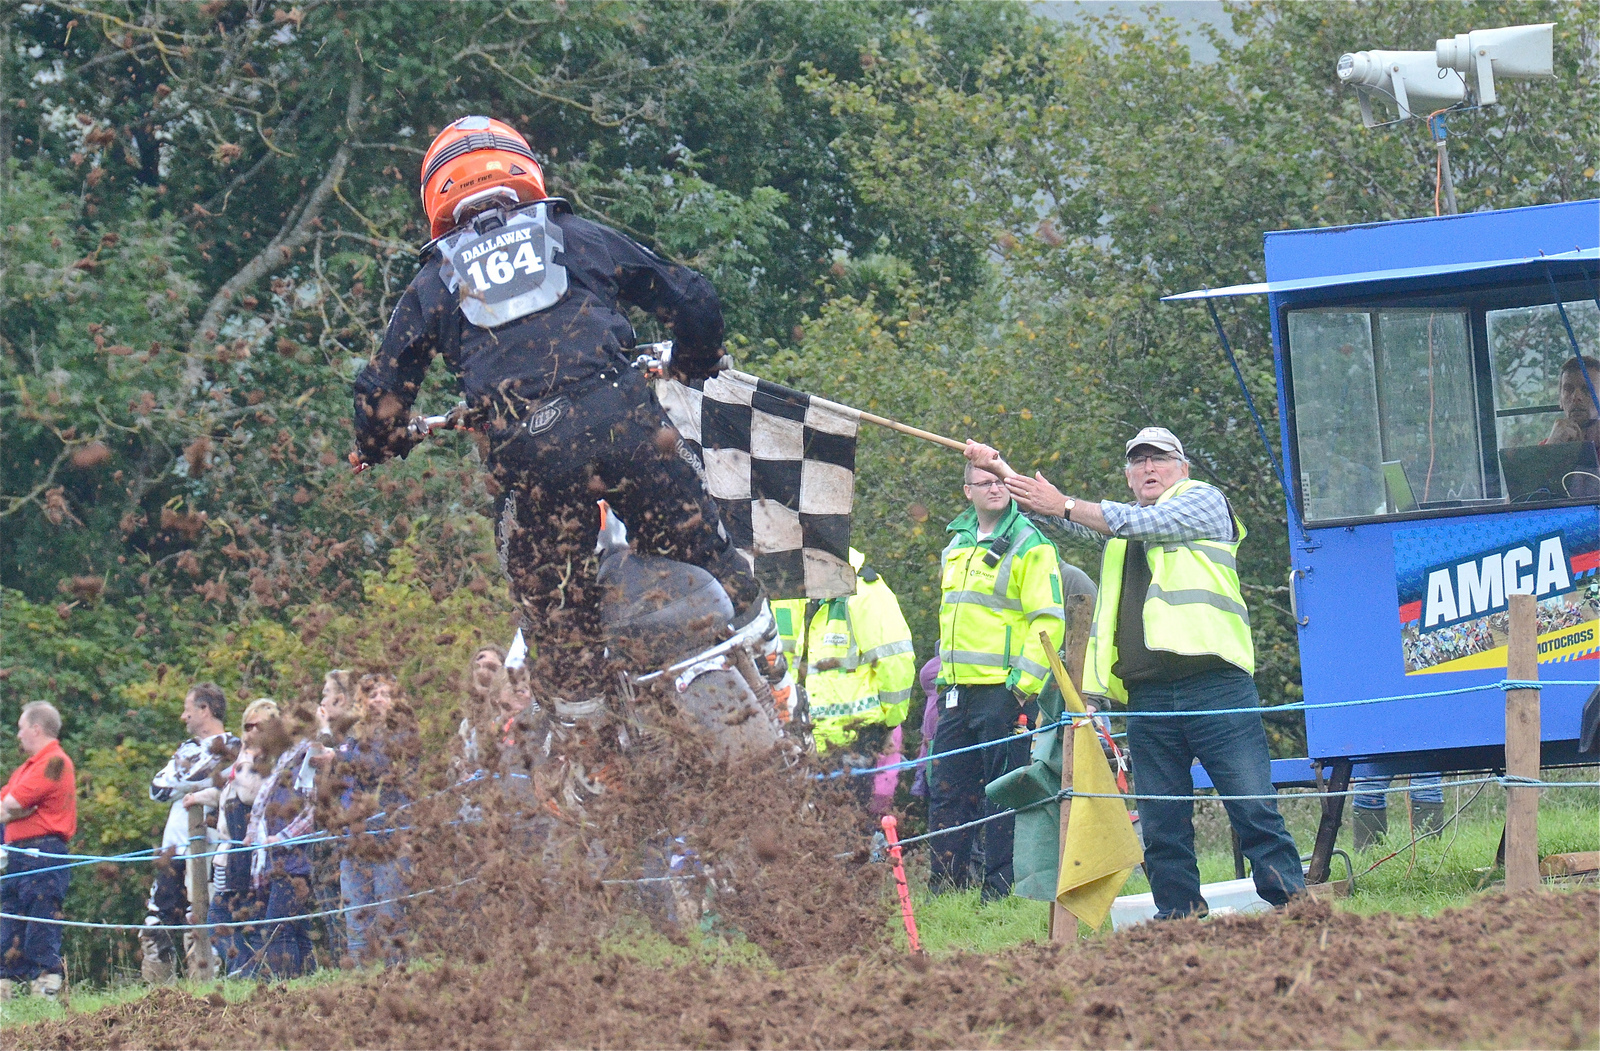 Llanthony Classic Scramble Photos September 2015 classicdirtbikerider.com..19